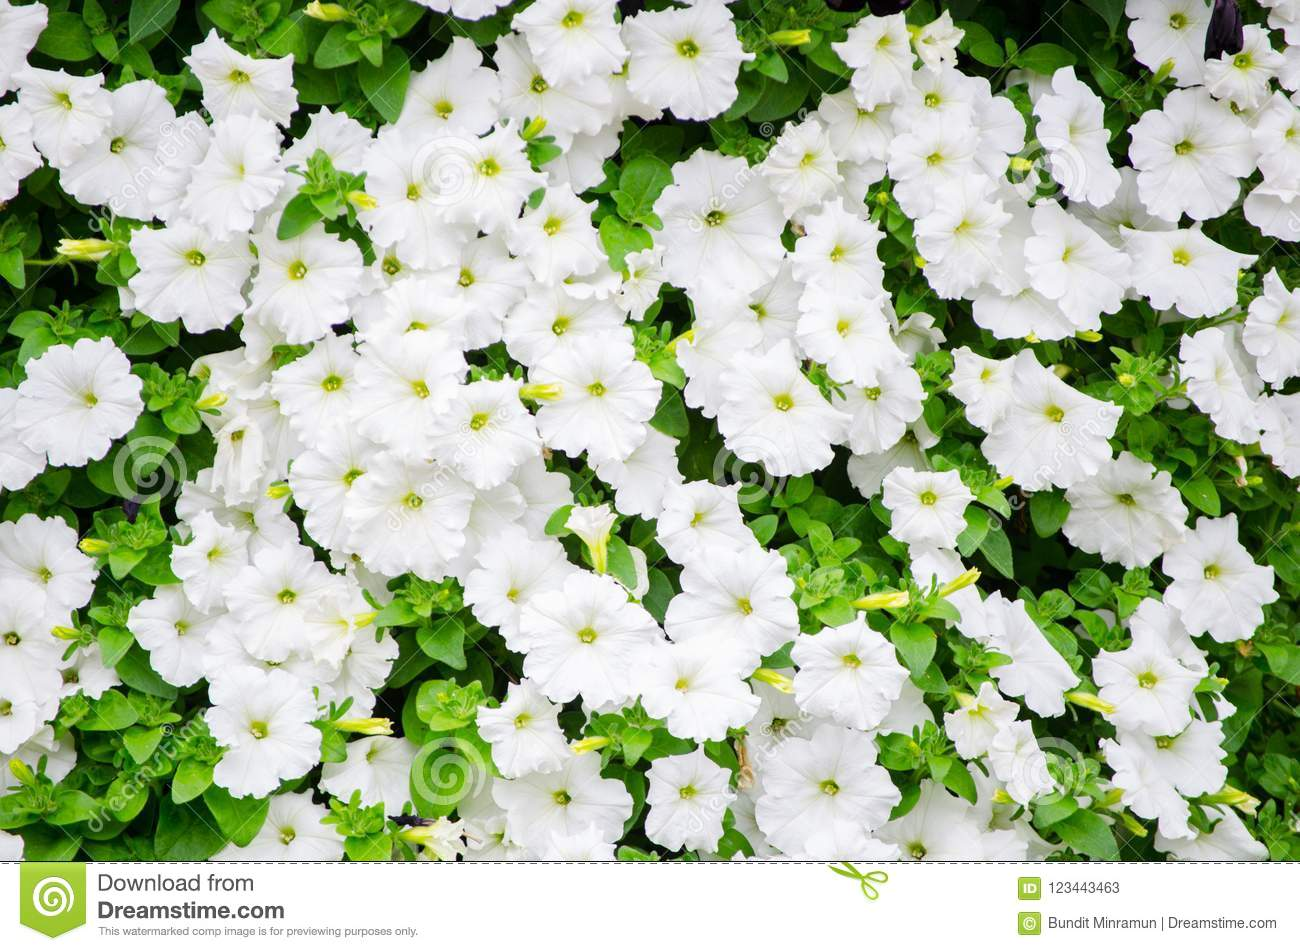 Groundcover Flower In White Color In A Spring Season At Botanical